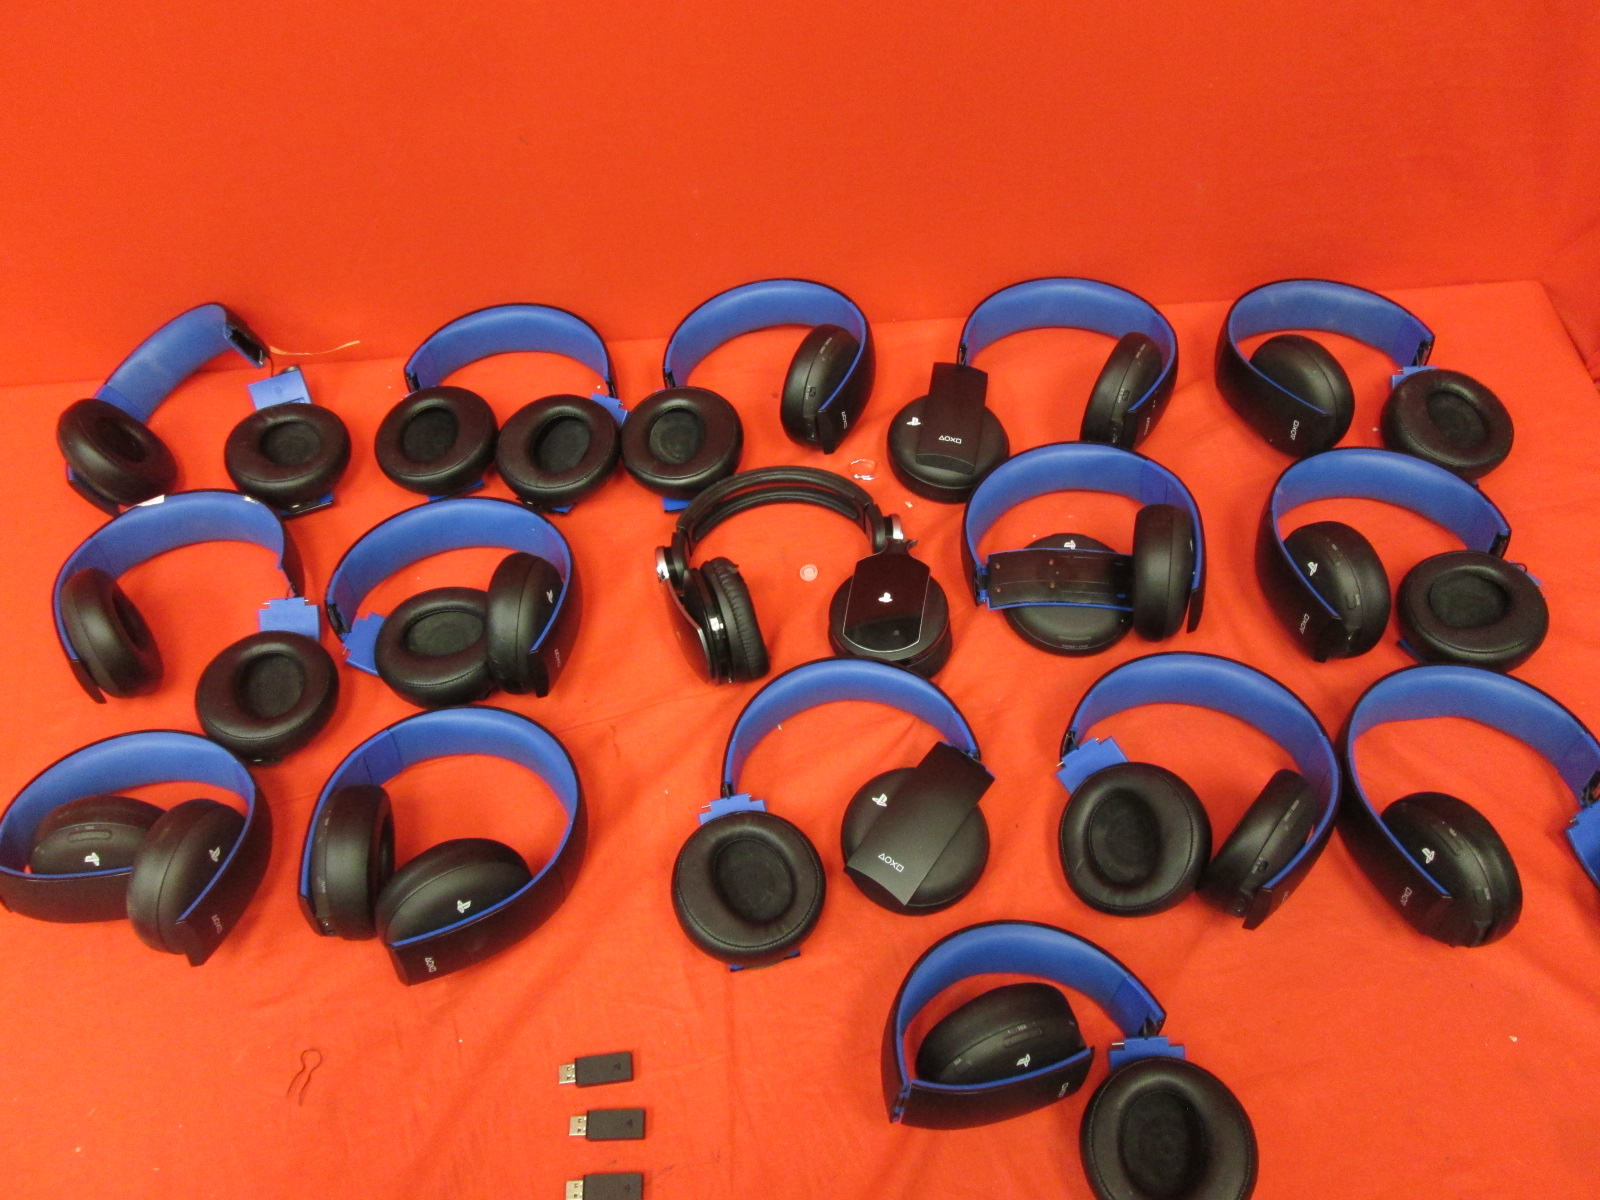 Broken Lot Of 15 Sony OEM Wireless Stereo Headset Jet Black For